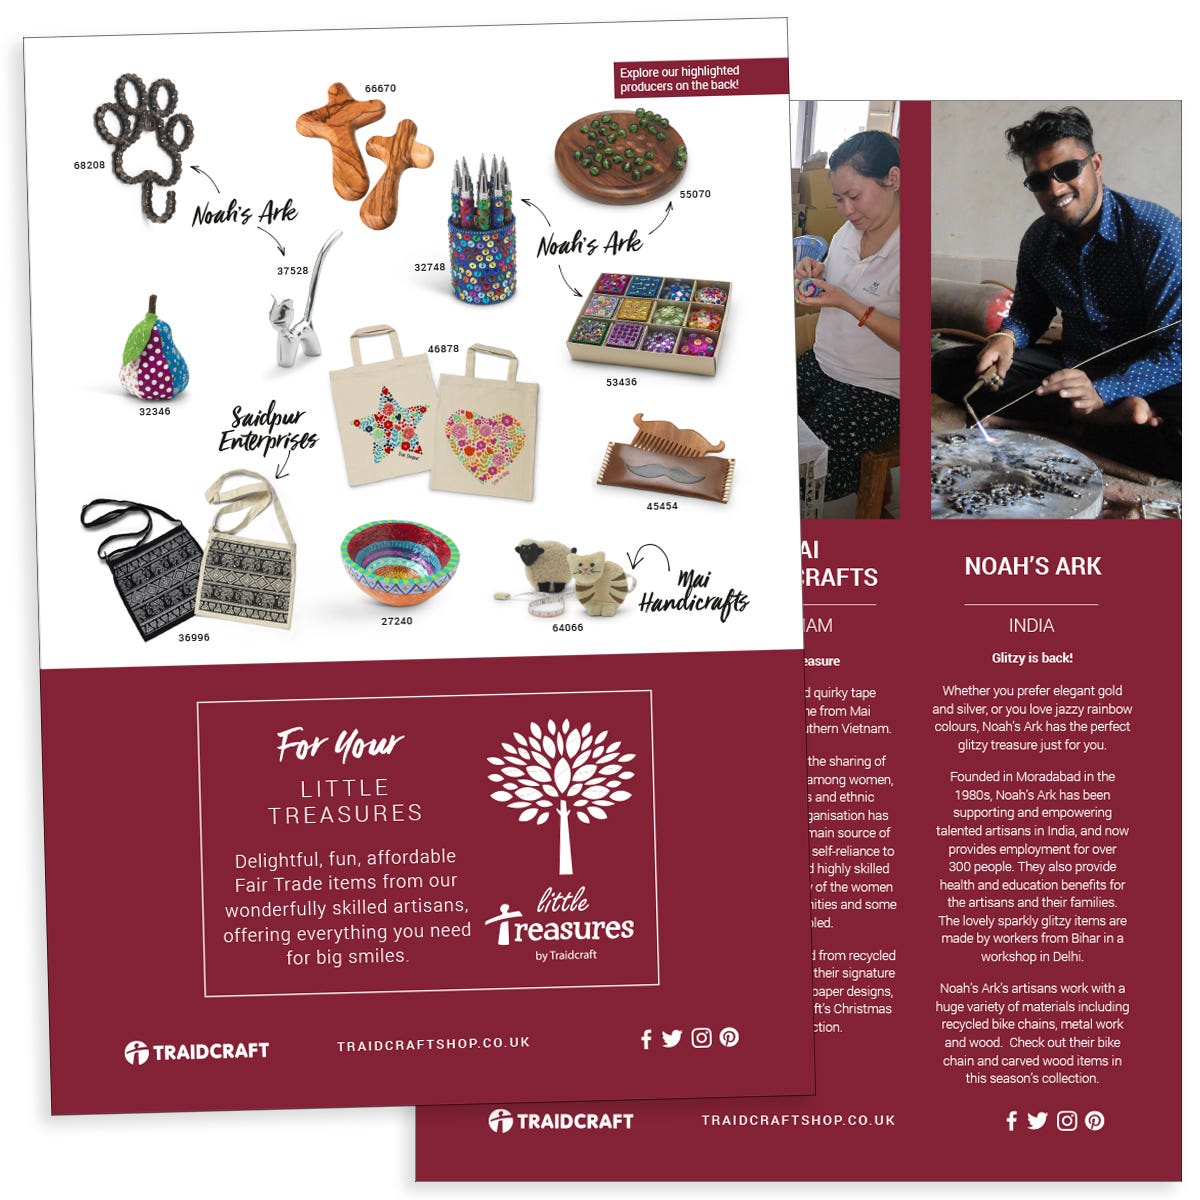 Point of Sale Poster - Little Treasures